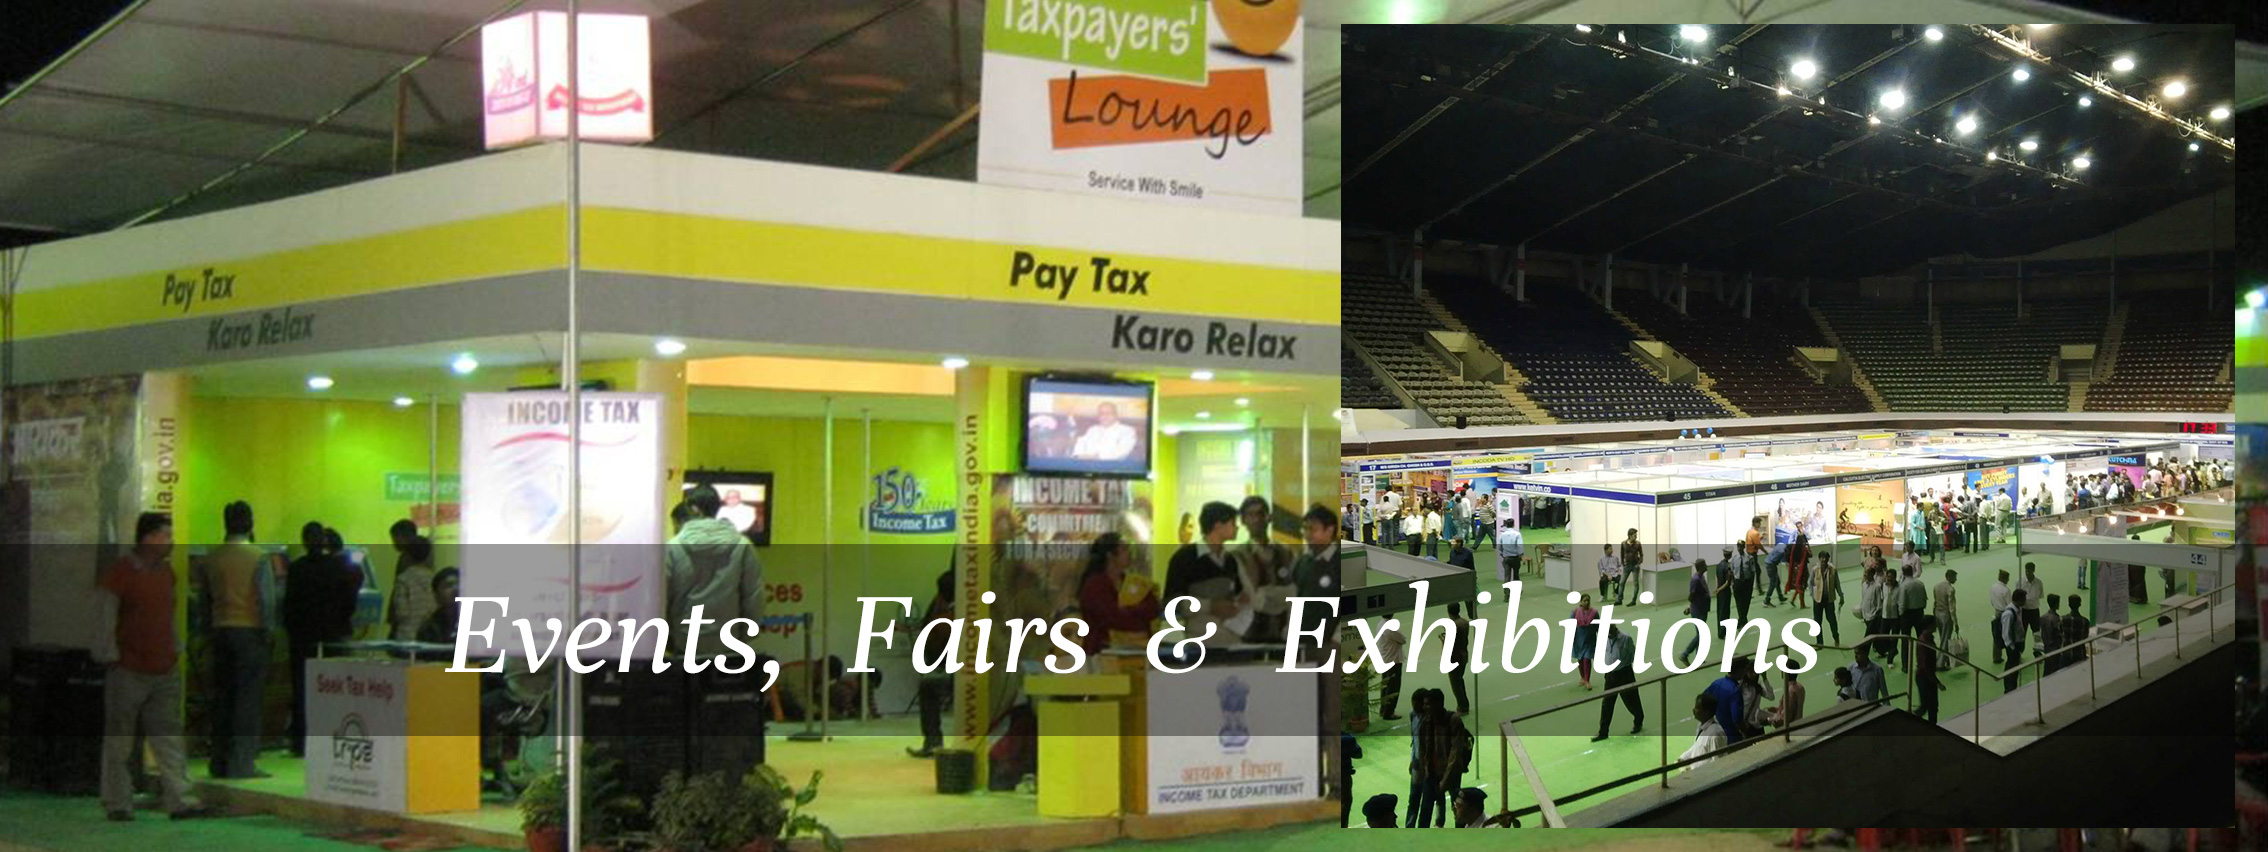 Events, Fairs & Exhibitions